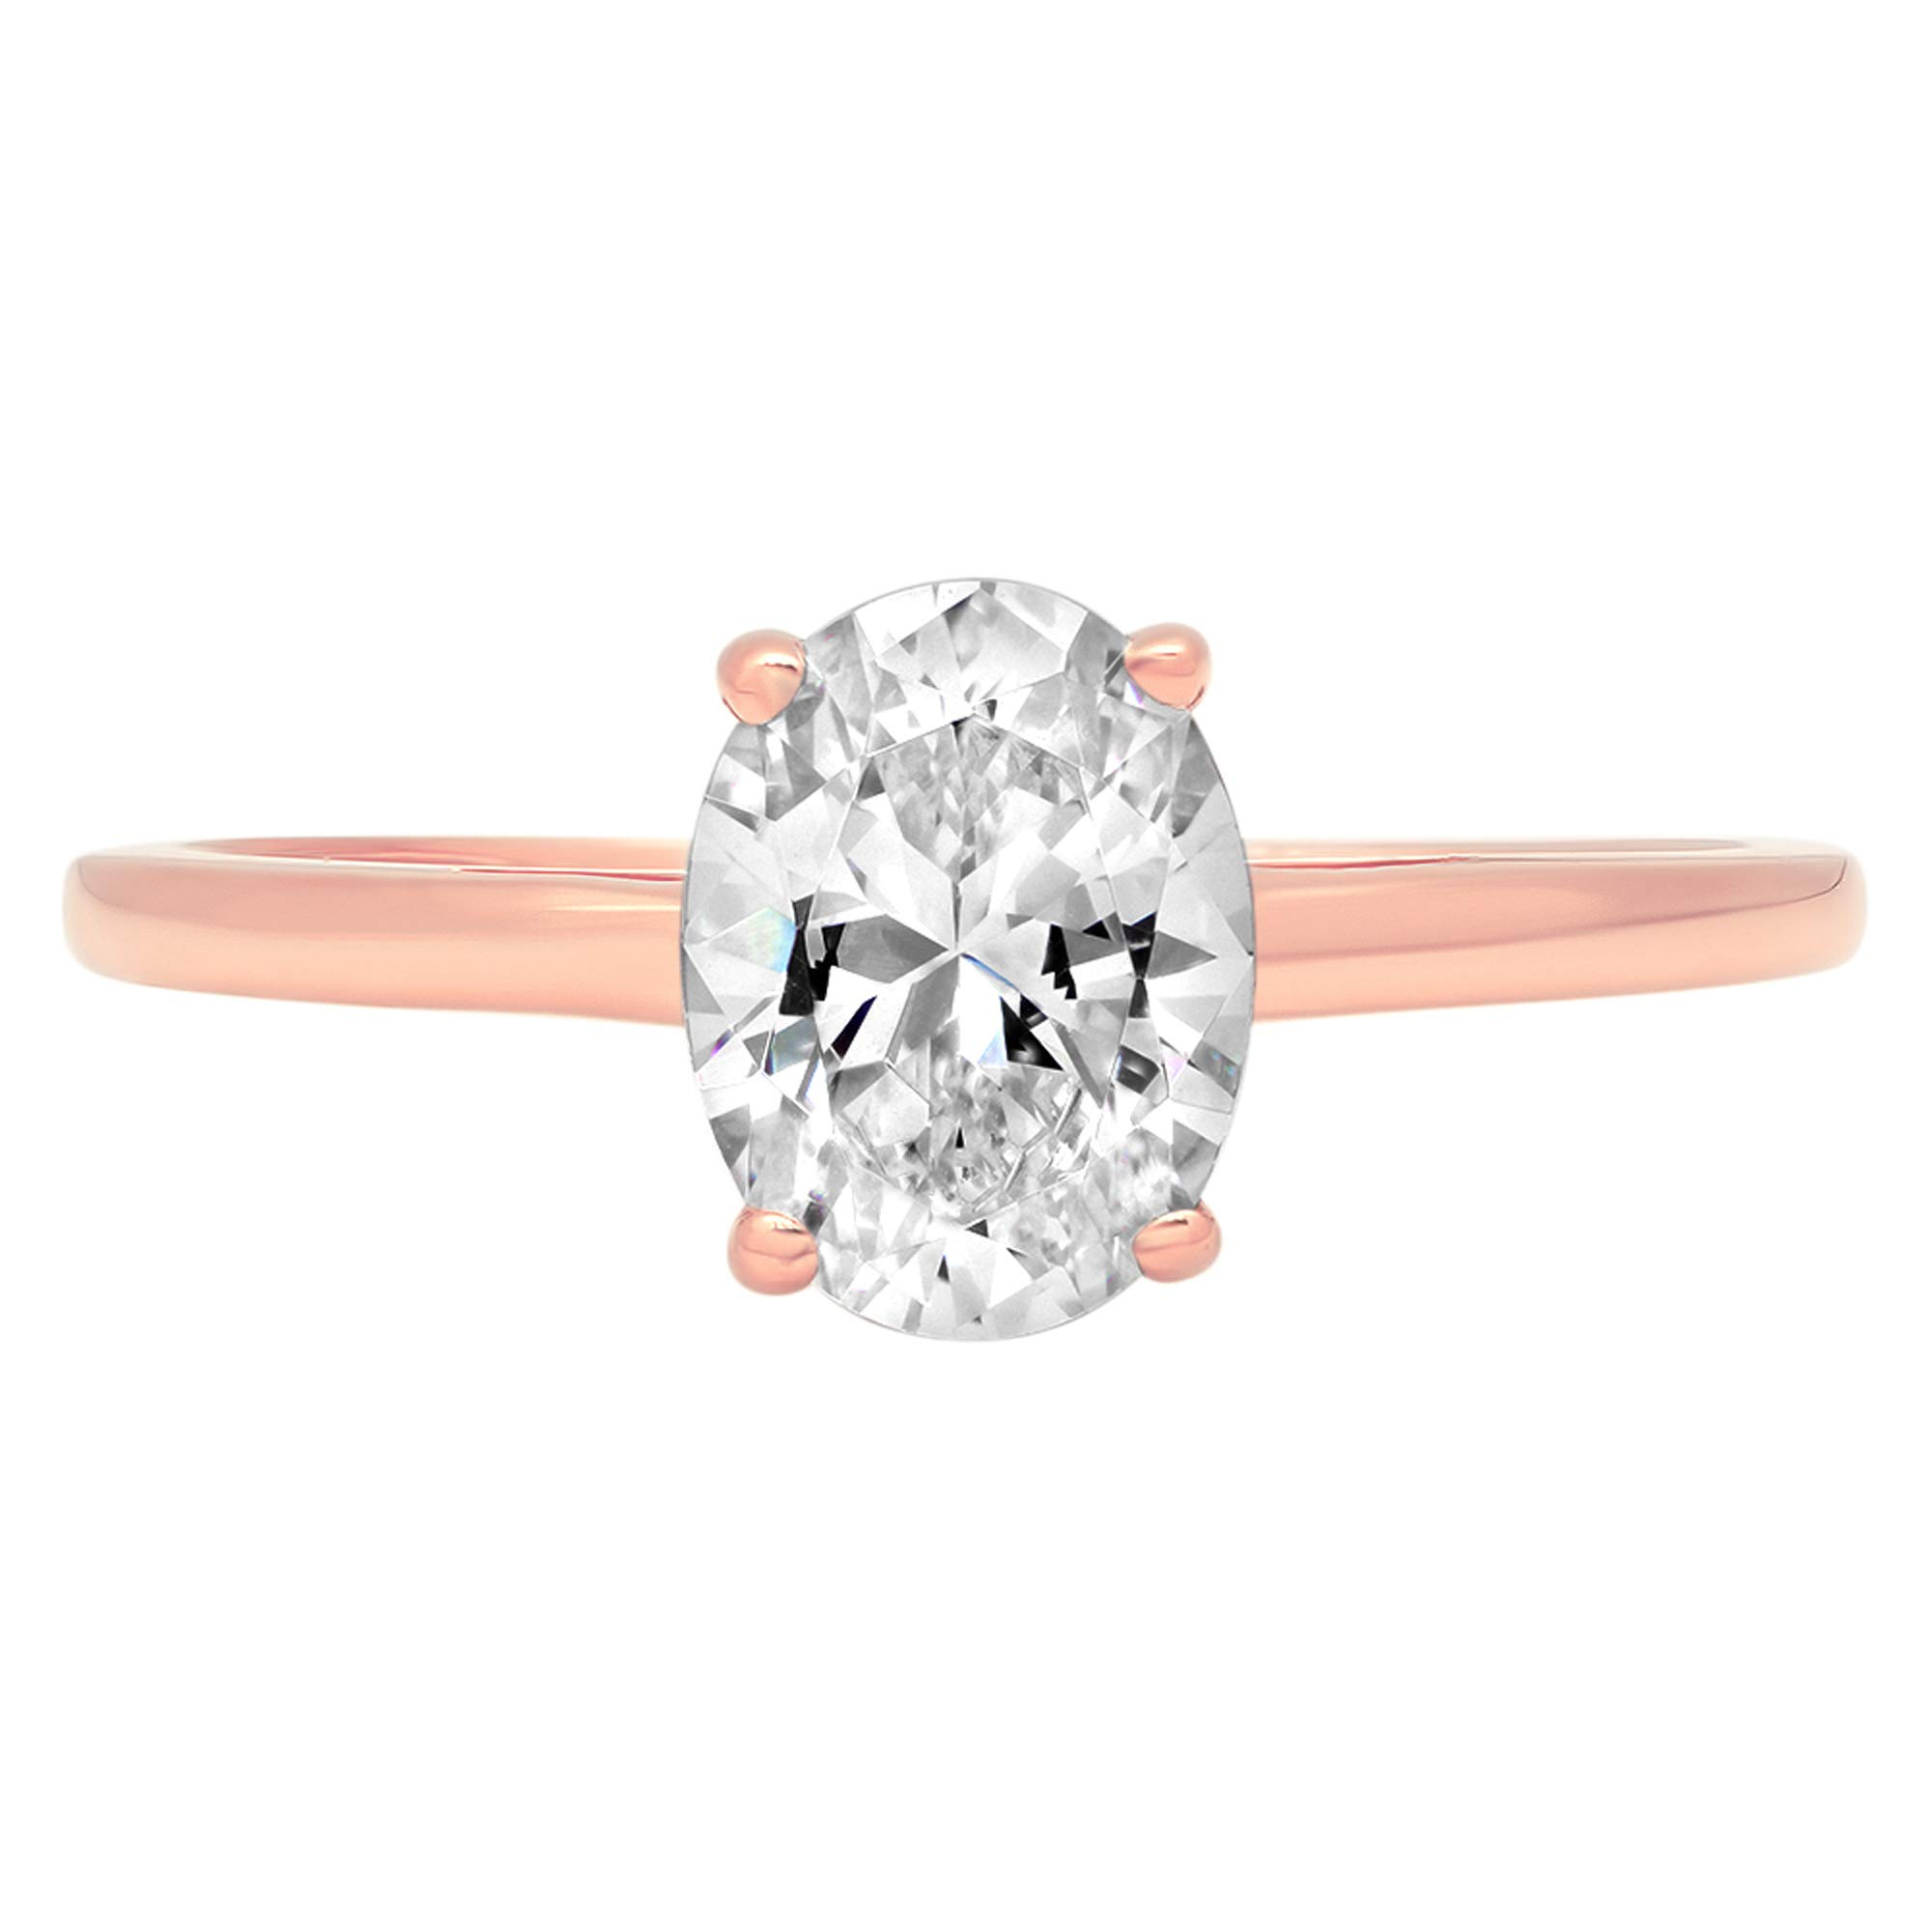 1.0 ct Brilliant Oval Cut Solitaire Highest Quality Lab Created White Sapphire Ideal VVS1 D 4-Prong Engagement Wedding Bridal Promise Anniversary Ring Solid Real 14k Rose Gold for Women